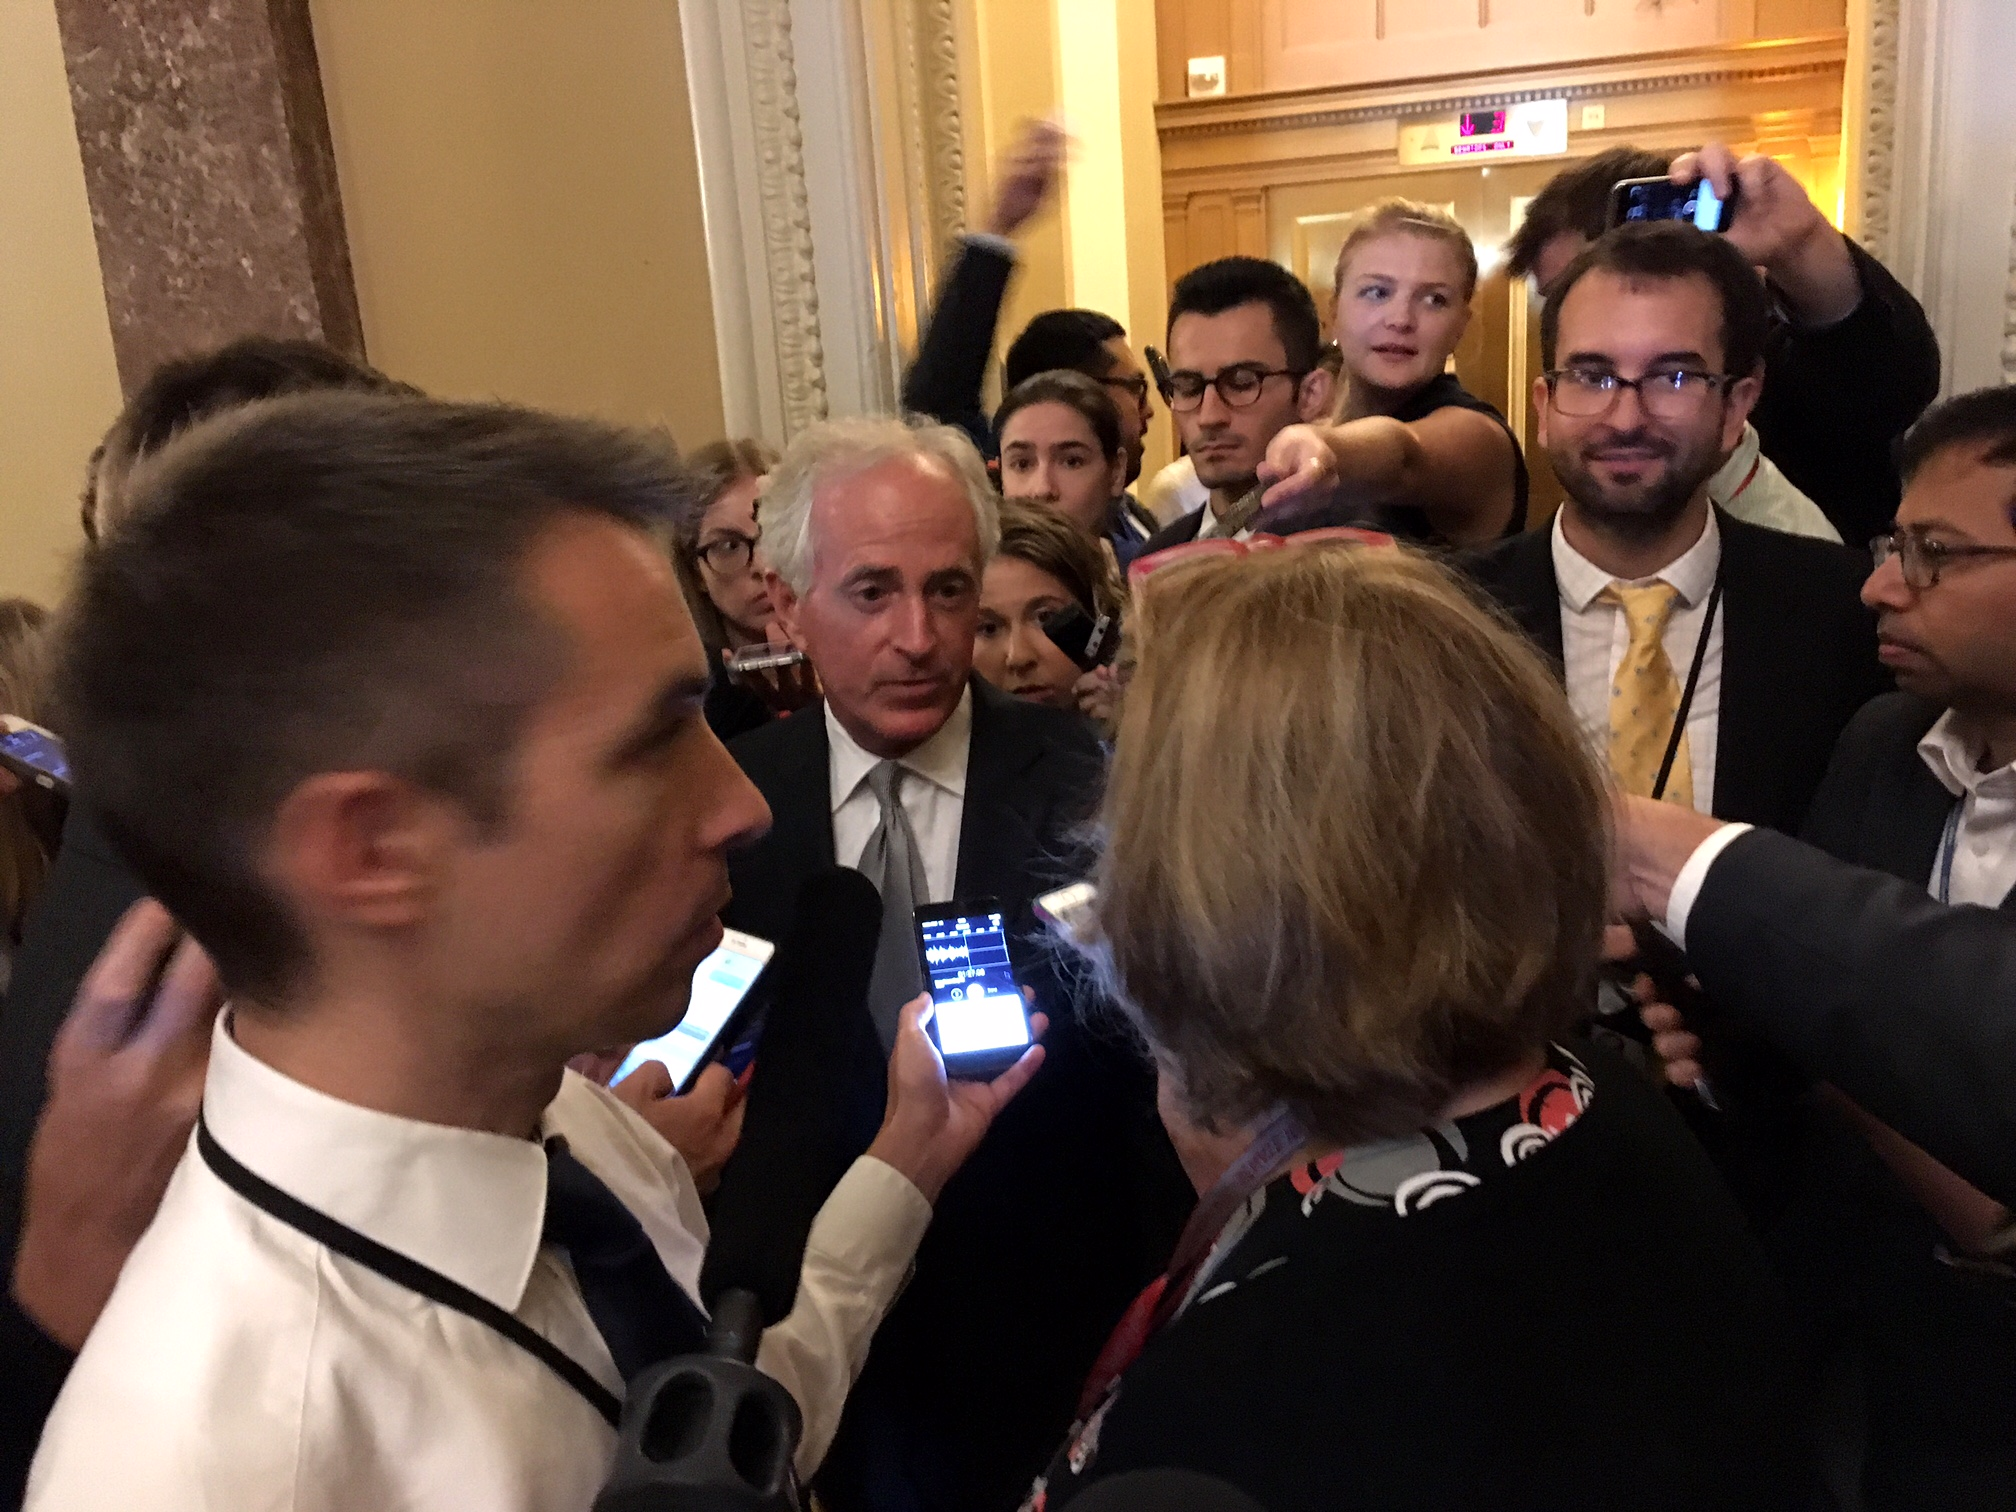 U.S. Sen. Bob Corker, R-Tennessee, at the center of one media scrum outside the Senate chamber. (Photo by Liz Ruskin/Alaska Public Media)